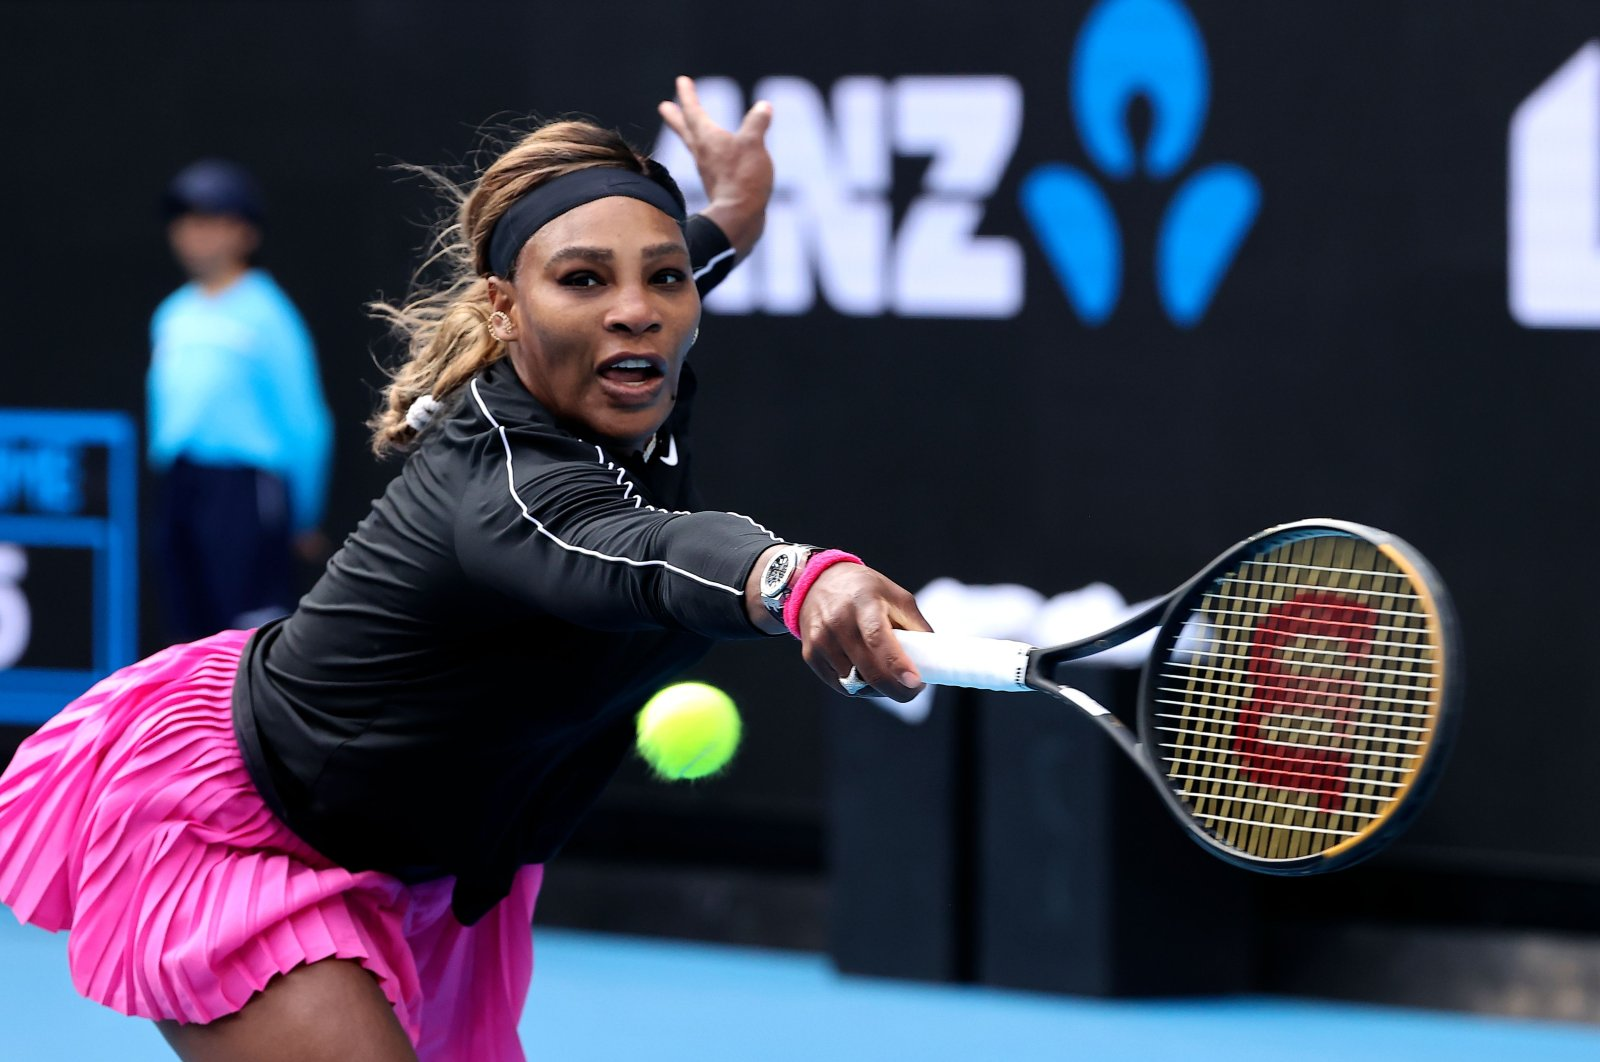 Serena Williams hits a return against Australia's Daria Gavrilova during their Yarra Valley Classic women's singles match, Melbourne, Australia, Feb. 1, 2021. (AFP Photo)